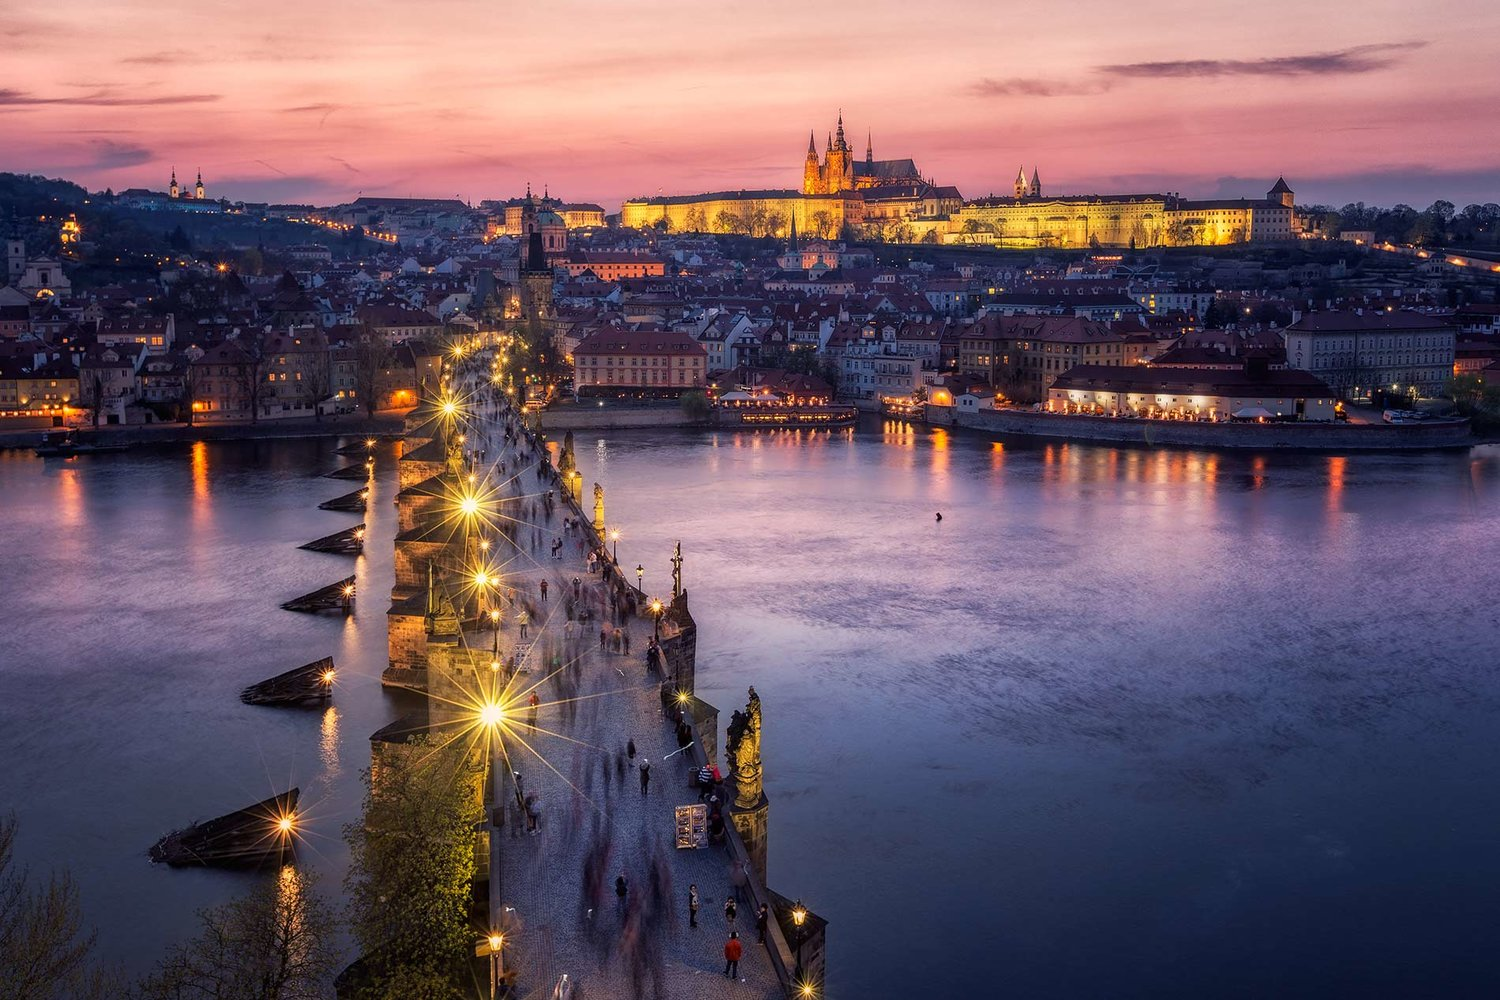 Charles bridge at dusk in front of Prague Castle on the horizon in Prague, Czech Republic